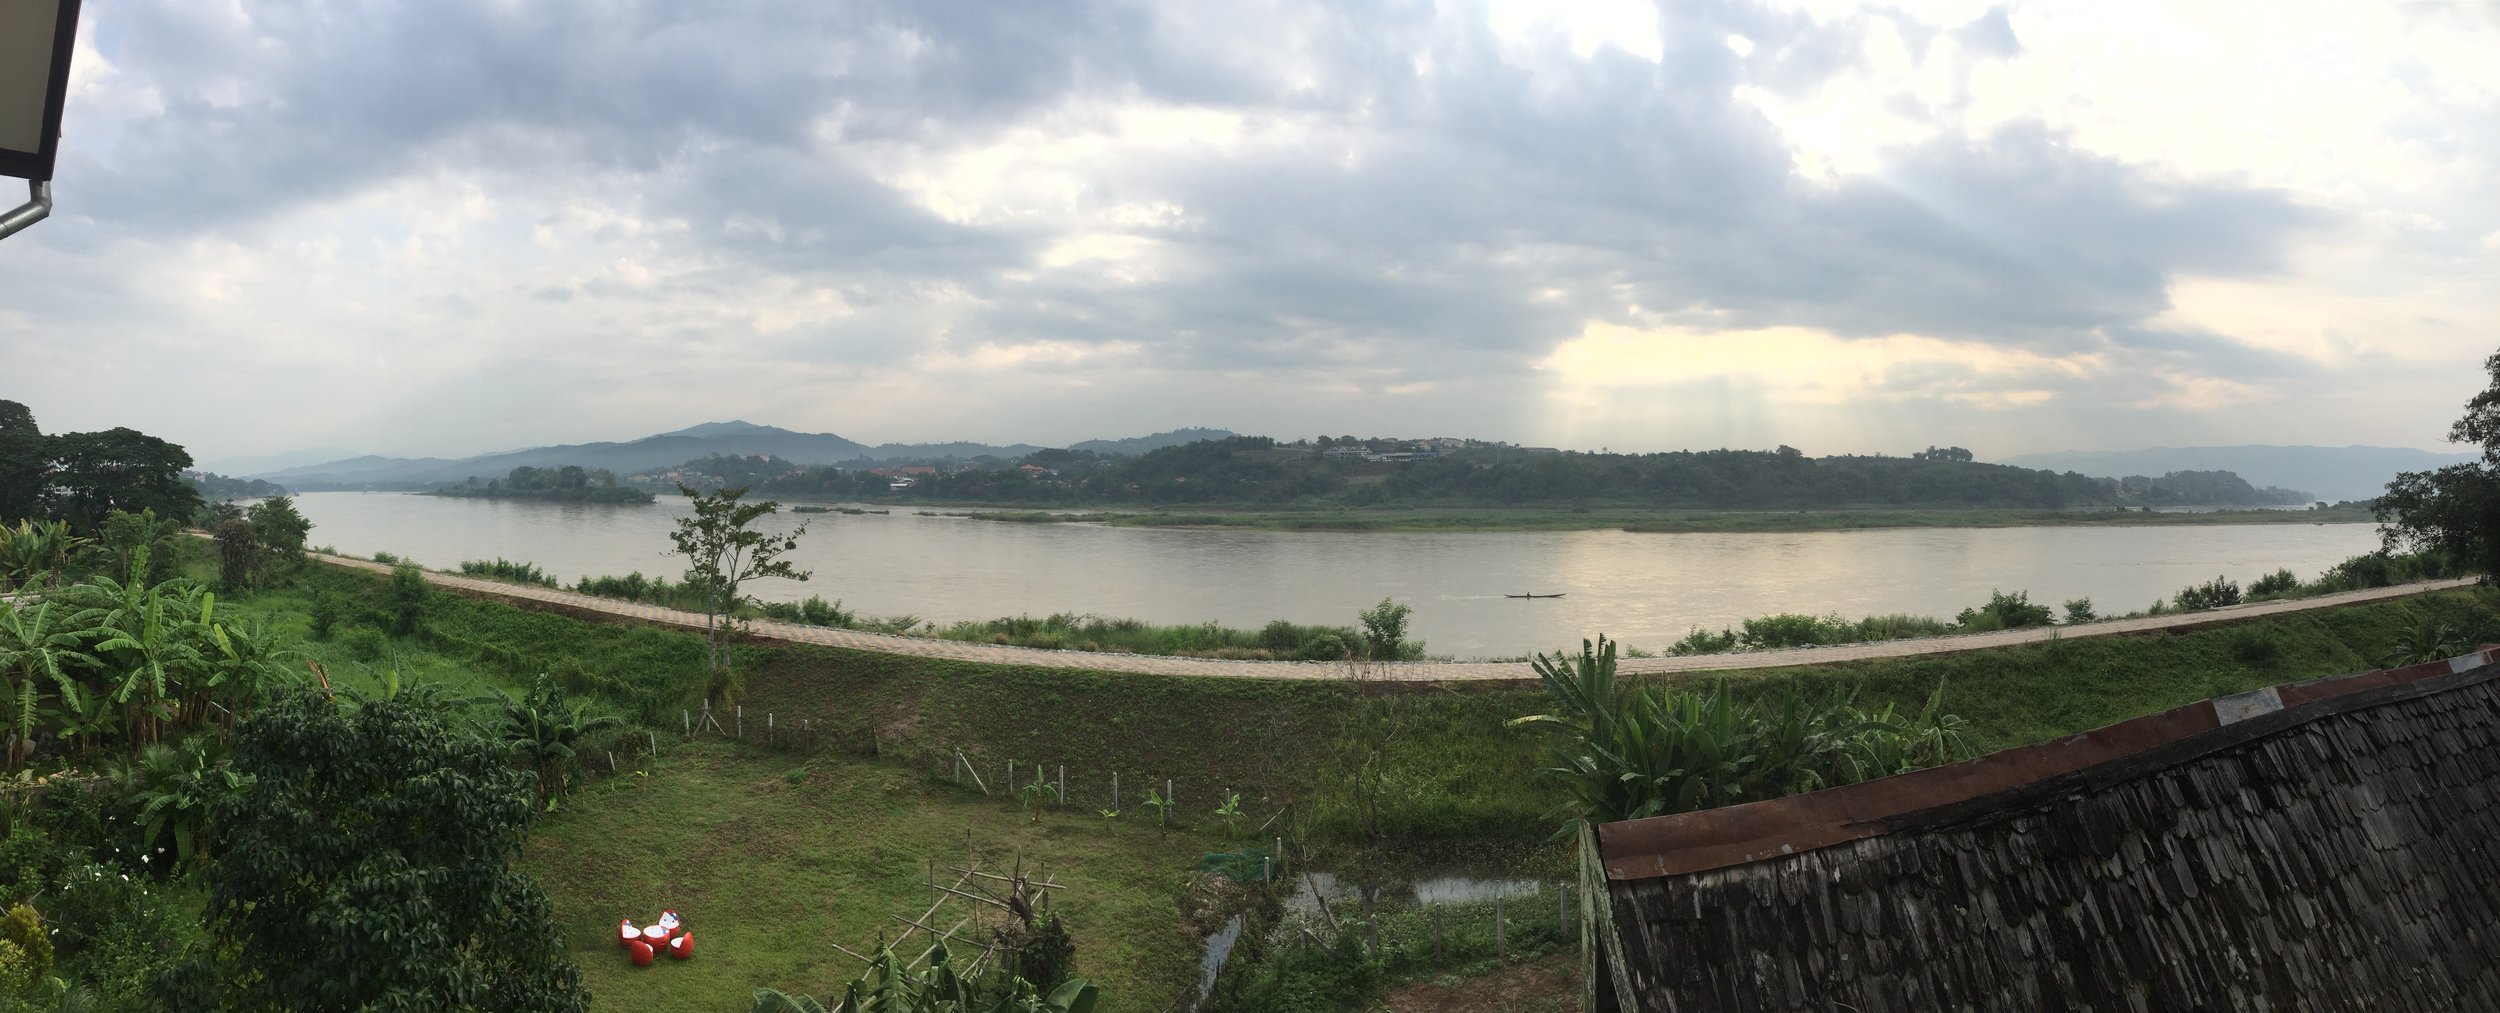 The view from our hostel, the Mekong river on the Thai side